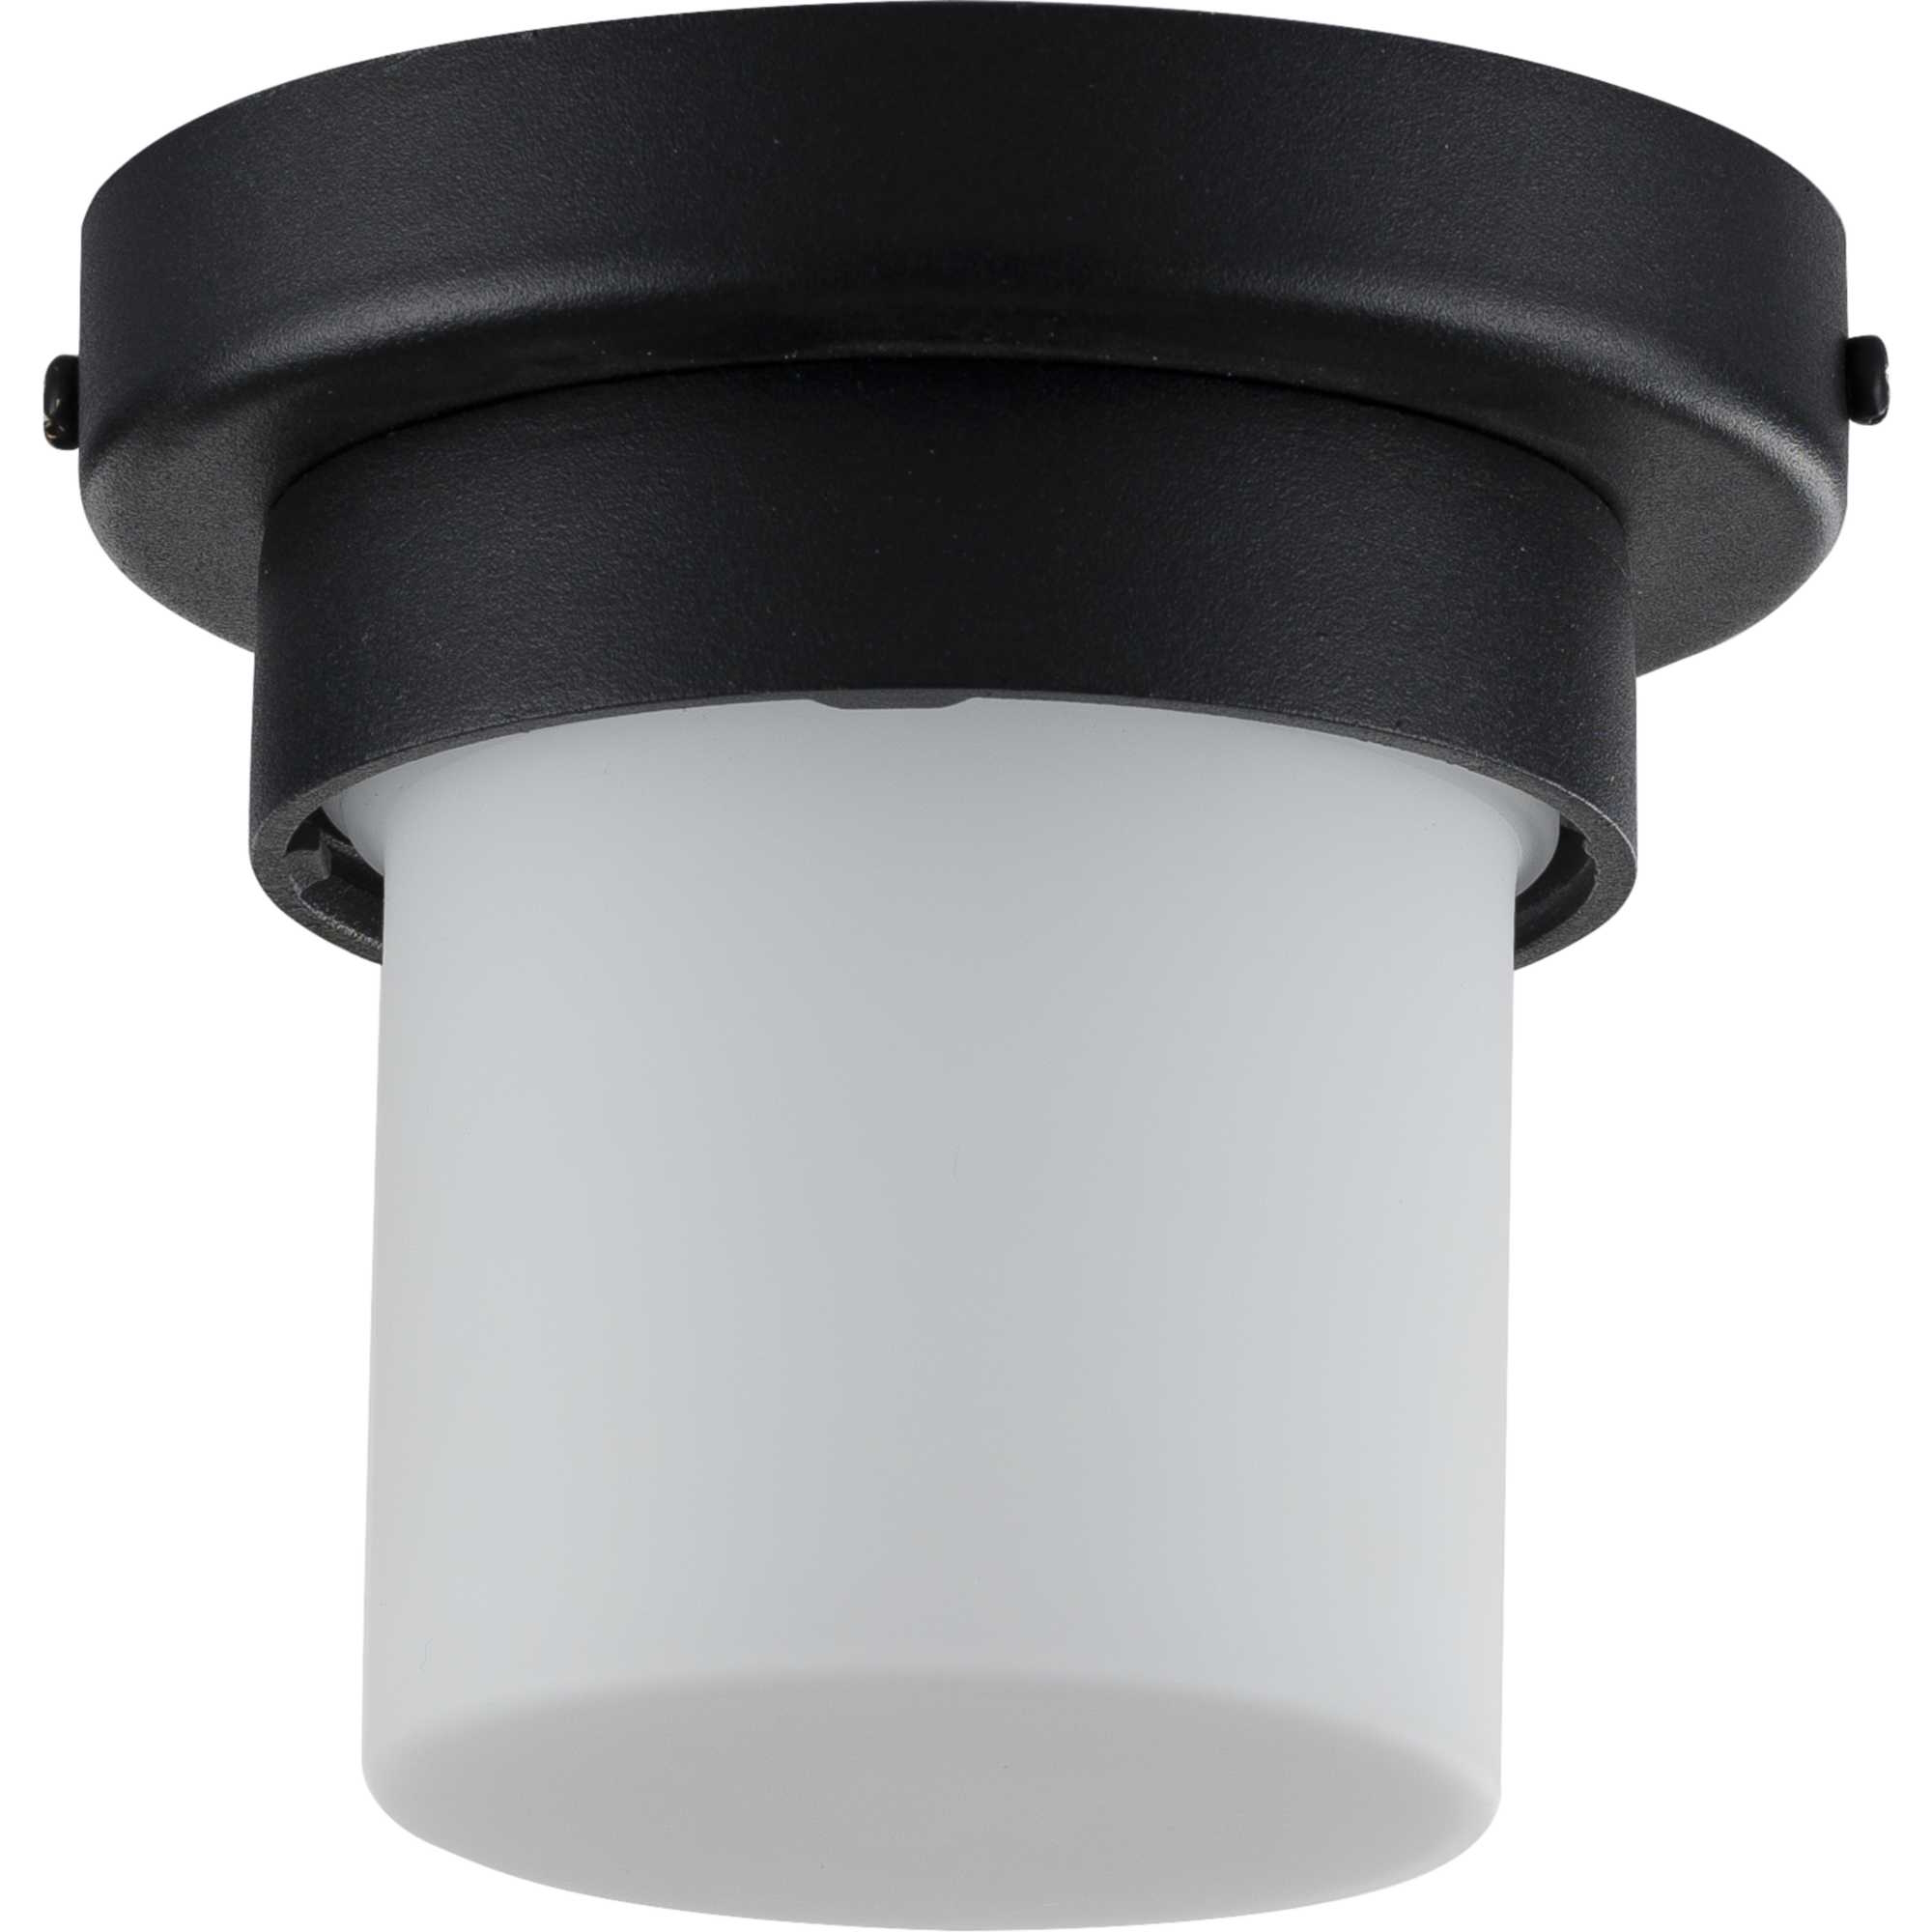 """Whisnant Black Integrated Led Frosted Glass Outdoor Flush Mount Regarding Well Known Progress Lighting P550071 30 5""""w Led Outdoor Flush Mount (View 11 of 15)"""